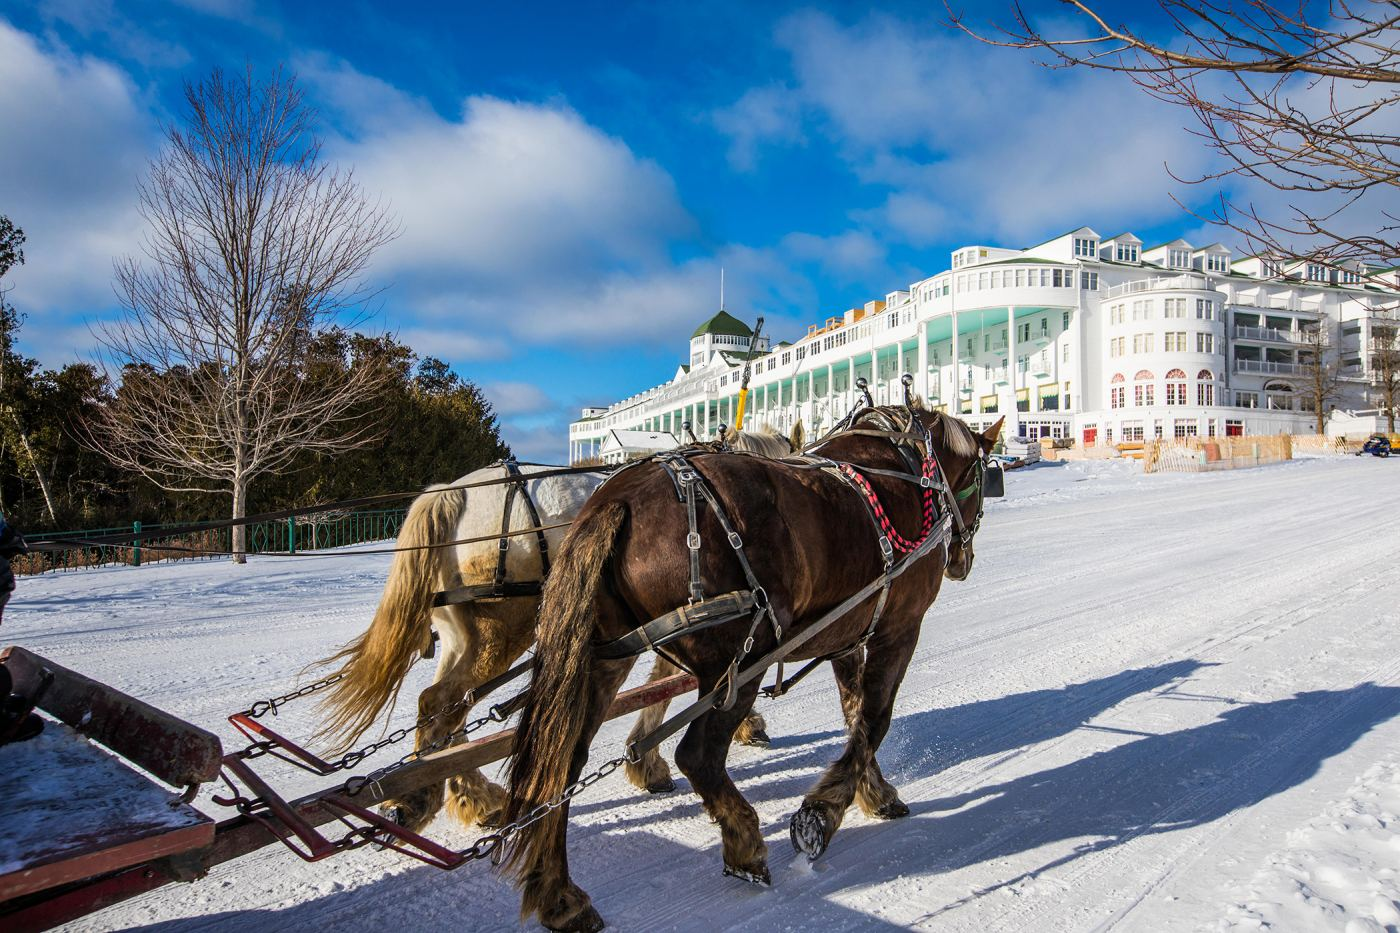 Behind the scenes at Mackinac Island's Grand Hotel in winter